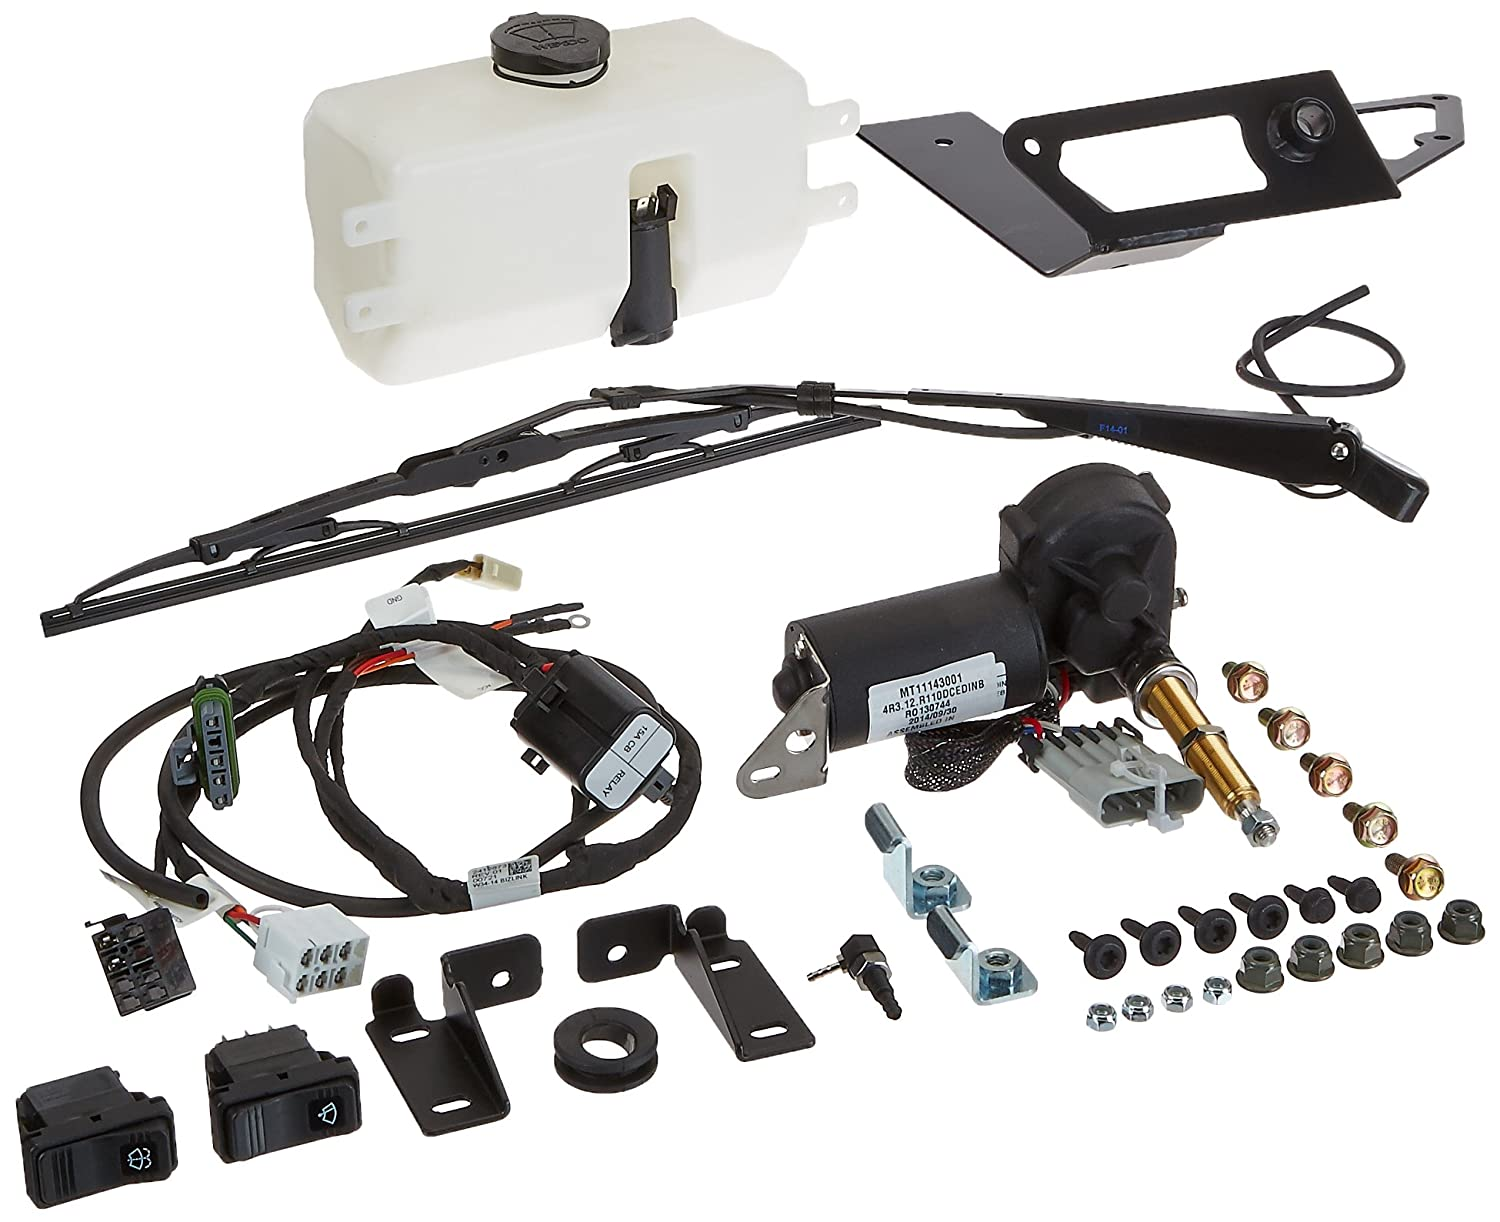 Polaris 2879526 Windshield Wiper Washer Kit Automotive Automatic Control